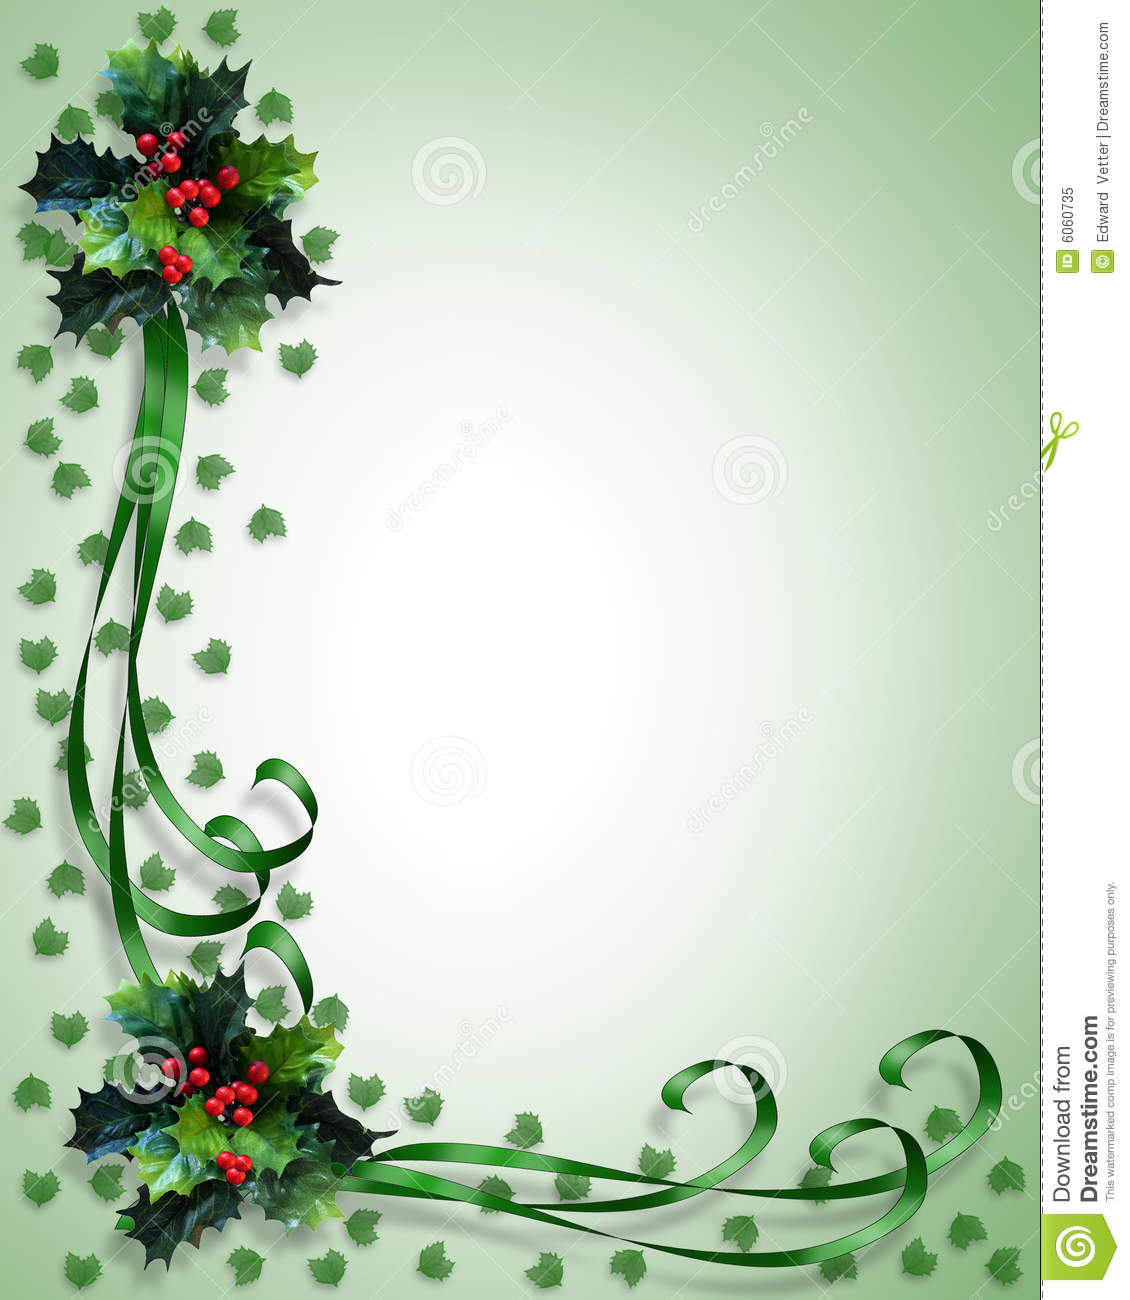 christmas border holly and ribbons royalty stock photo christmas border holly and ribbons